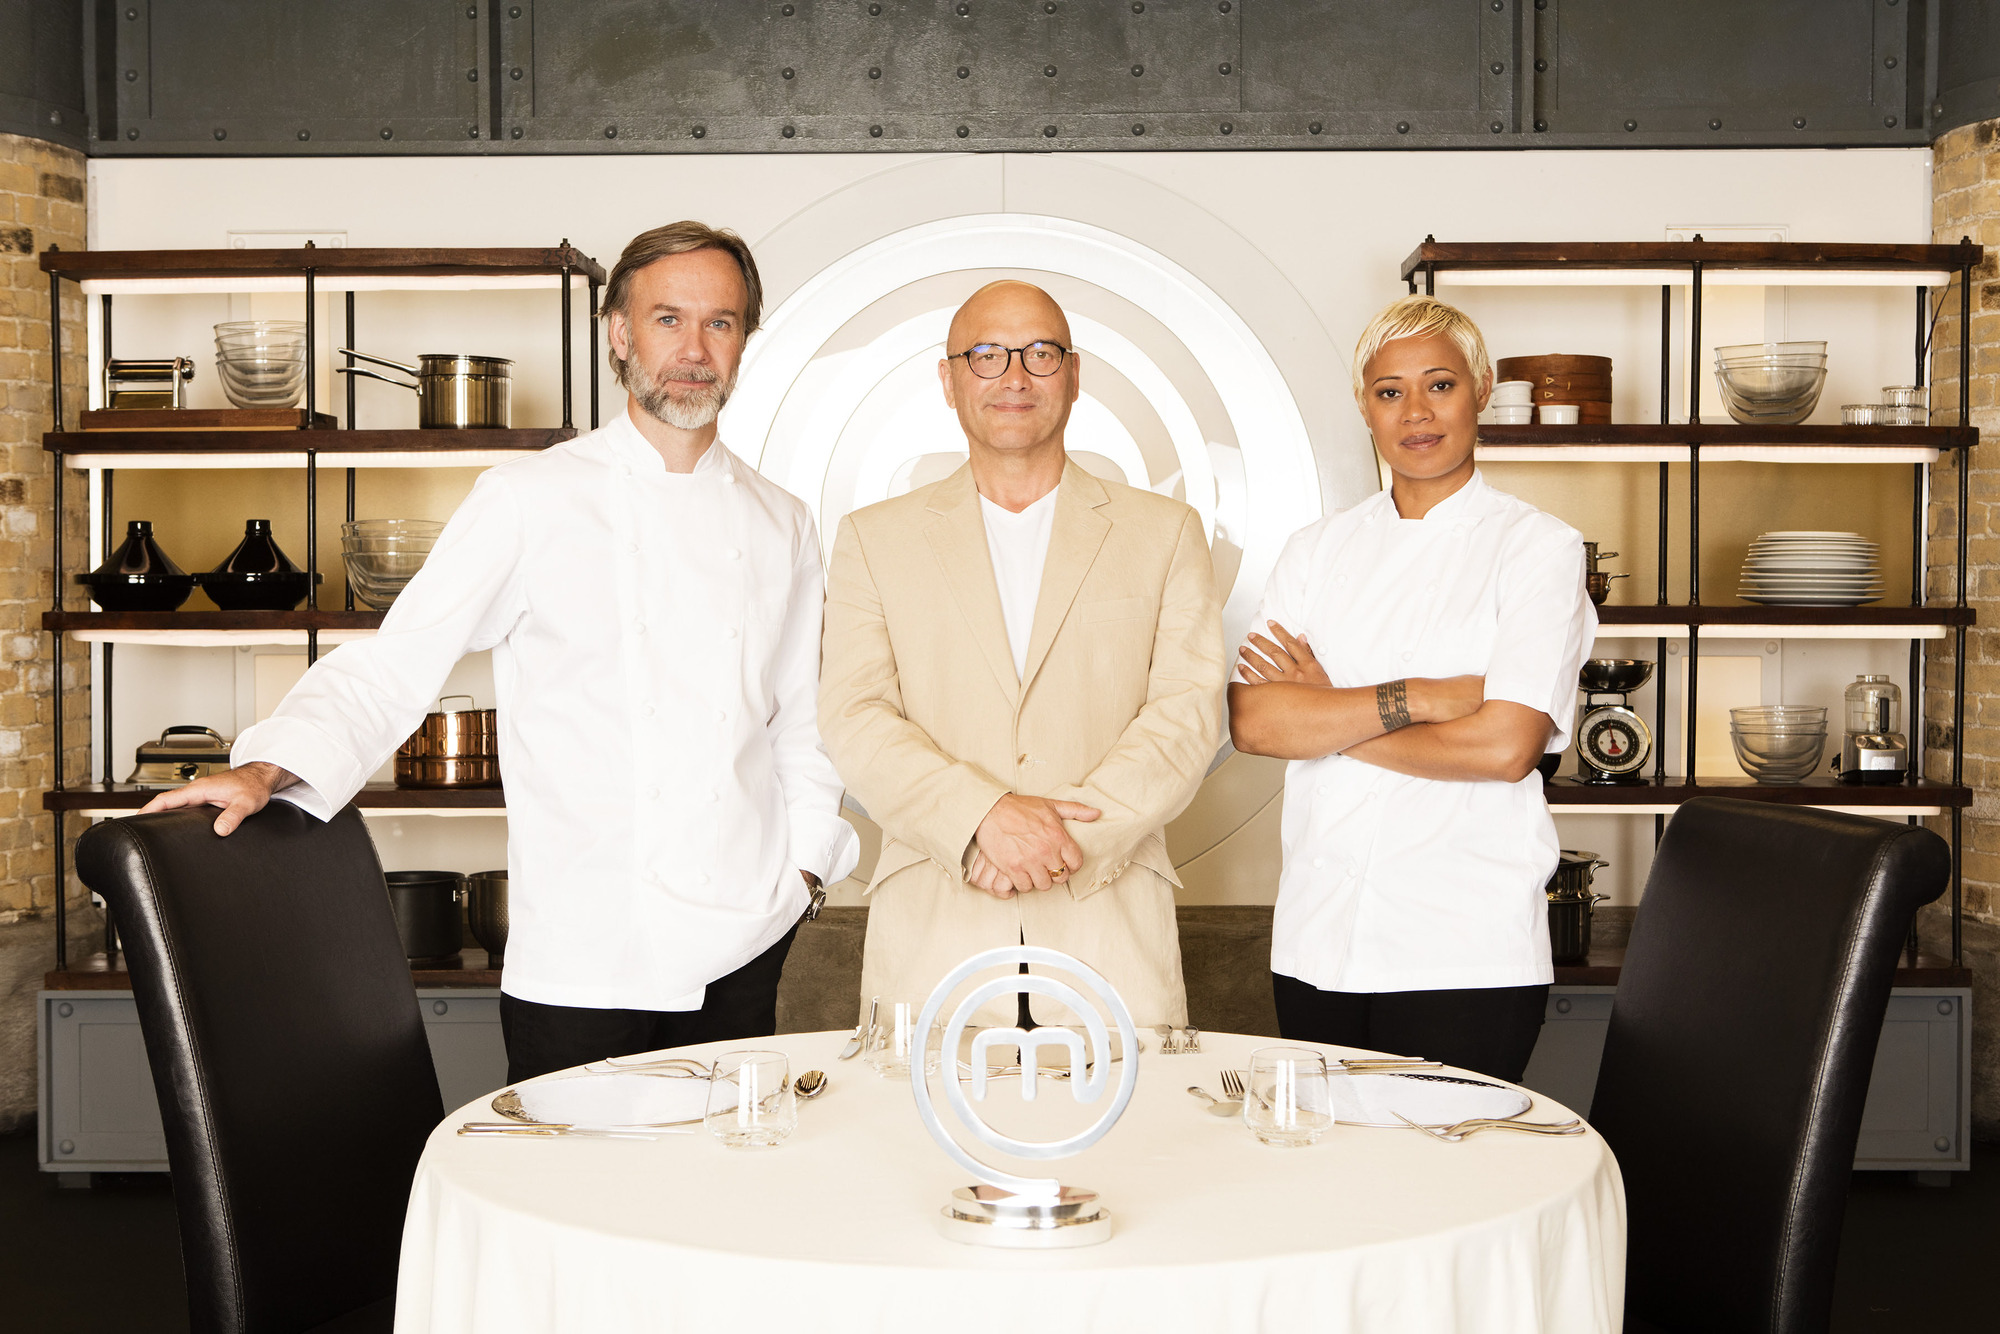 When is MasterChef The Professionals on and who is judging?